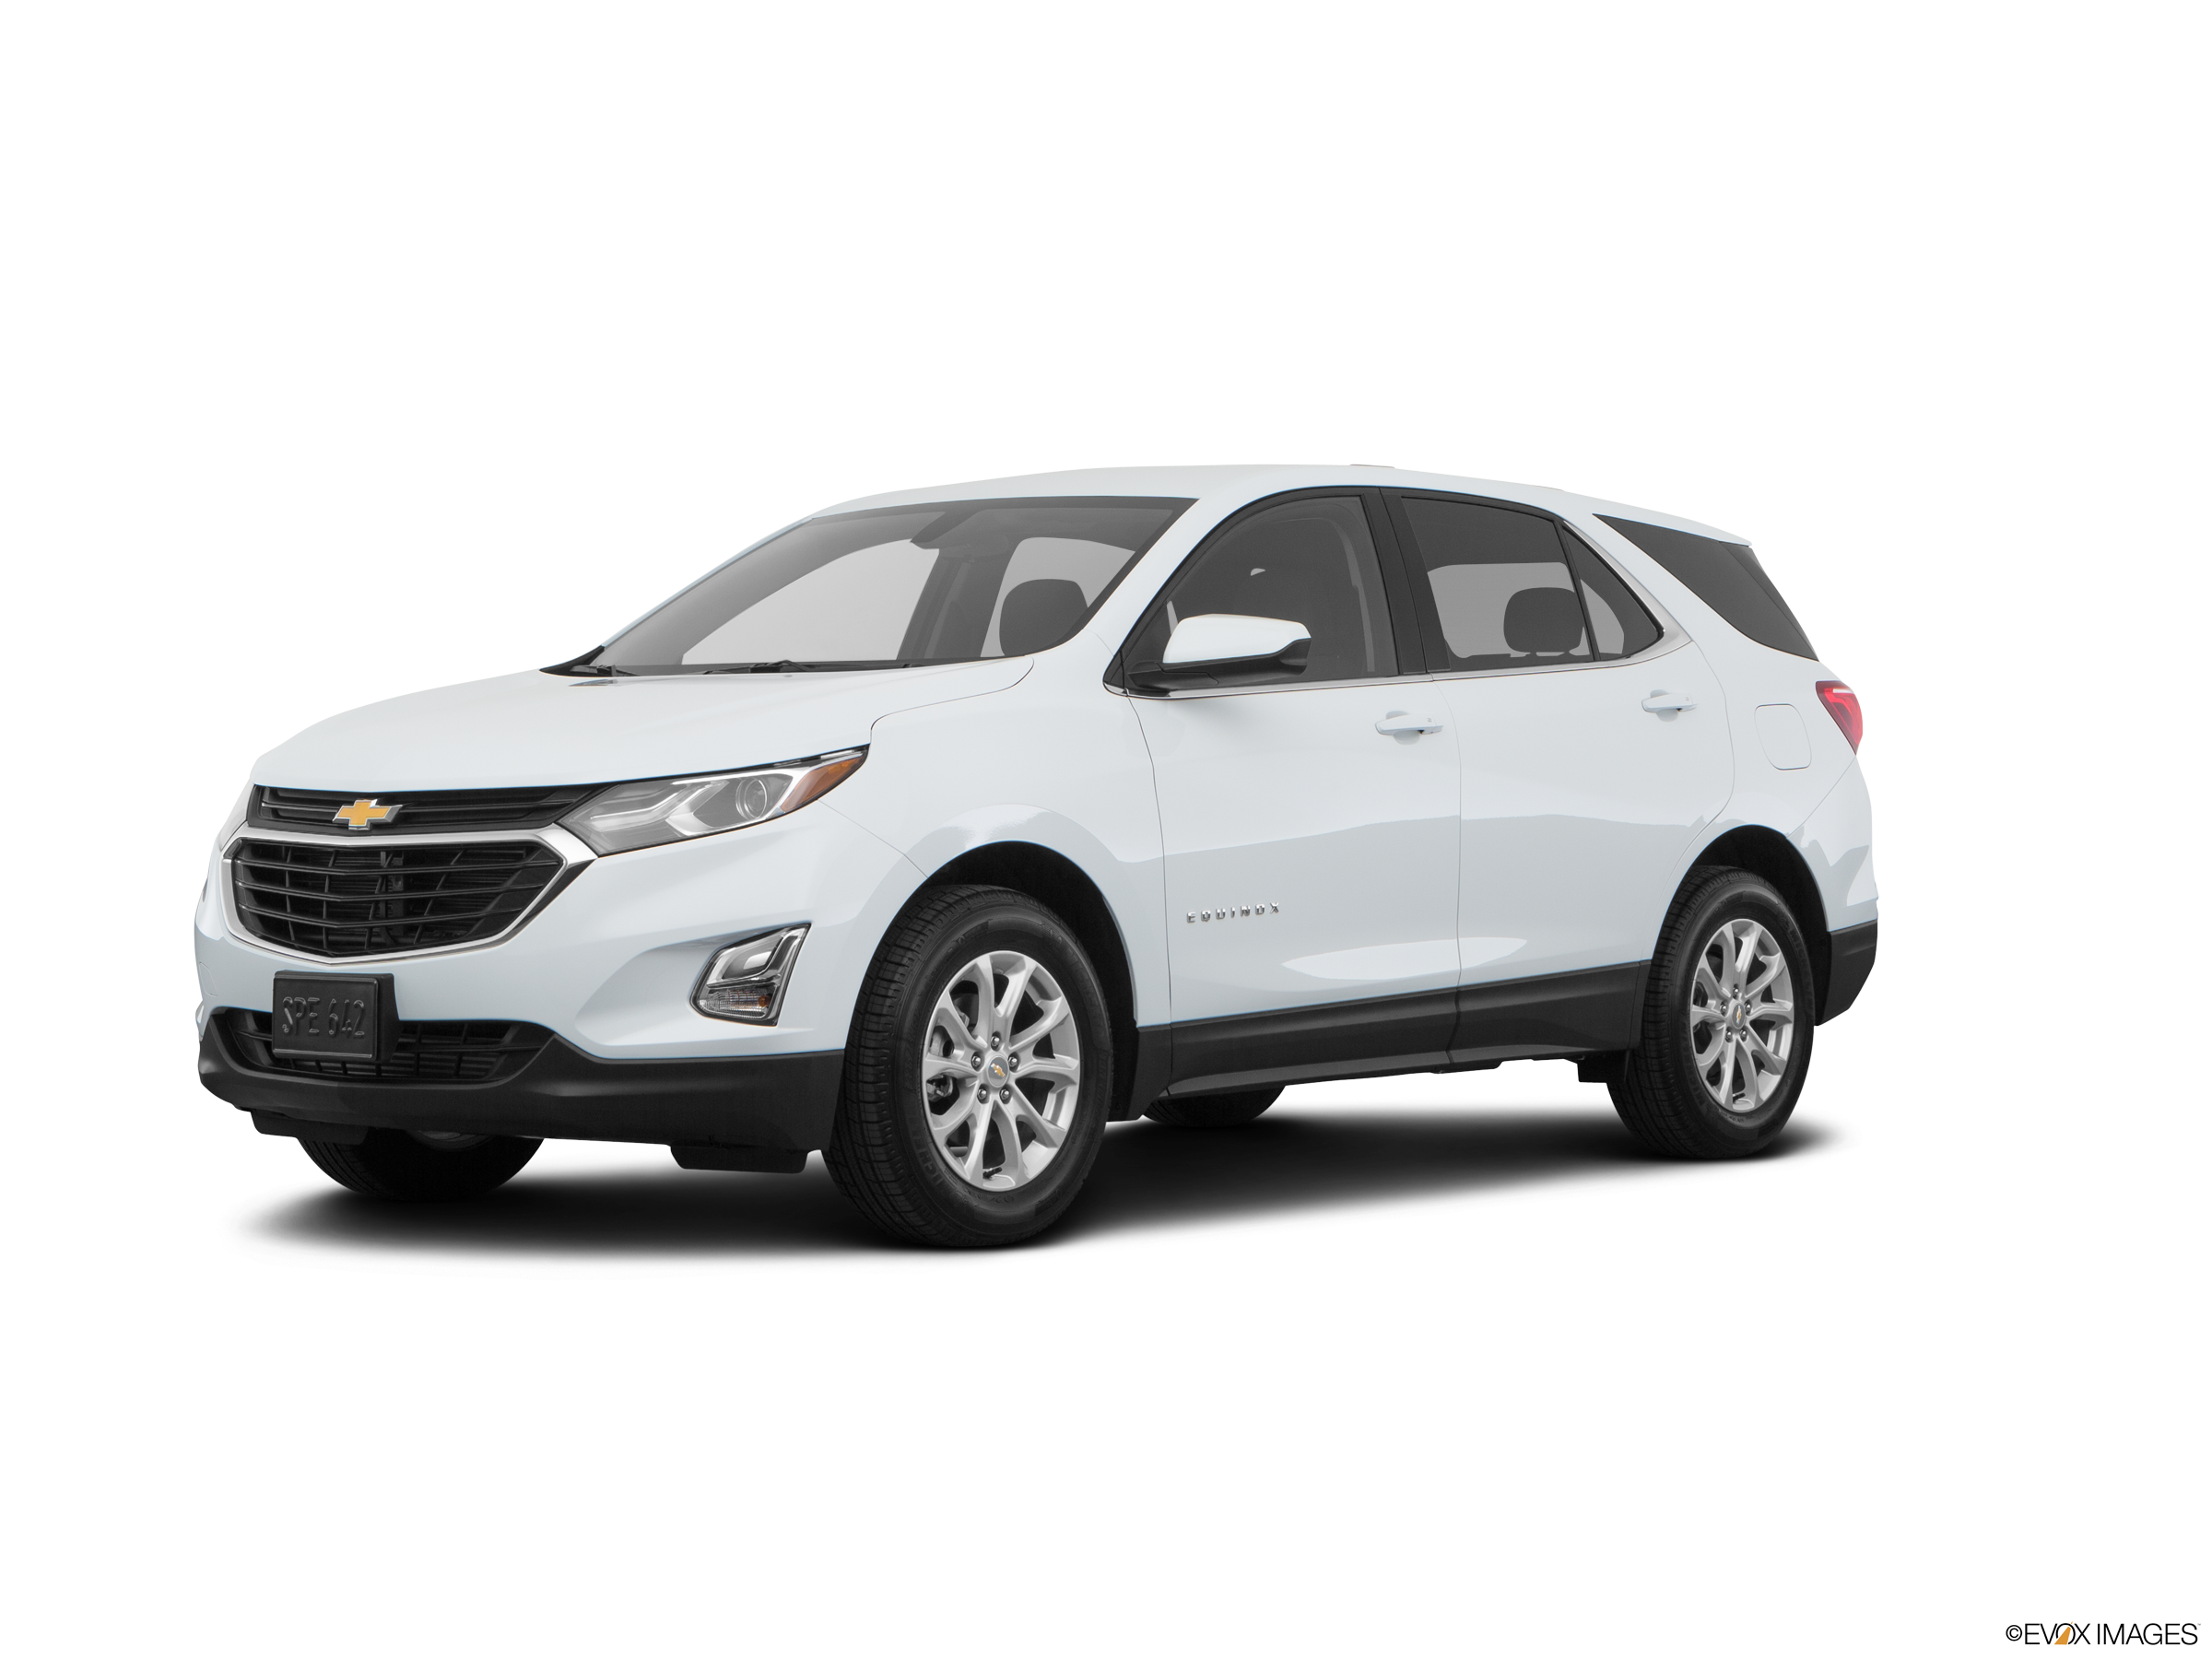 10 Best SUVs Under $25,000 - 2018 Chevrolet Equinox